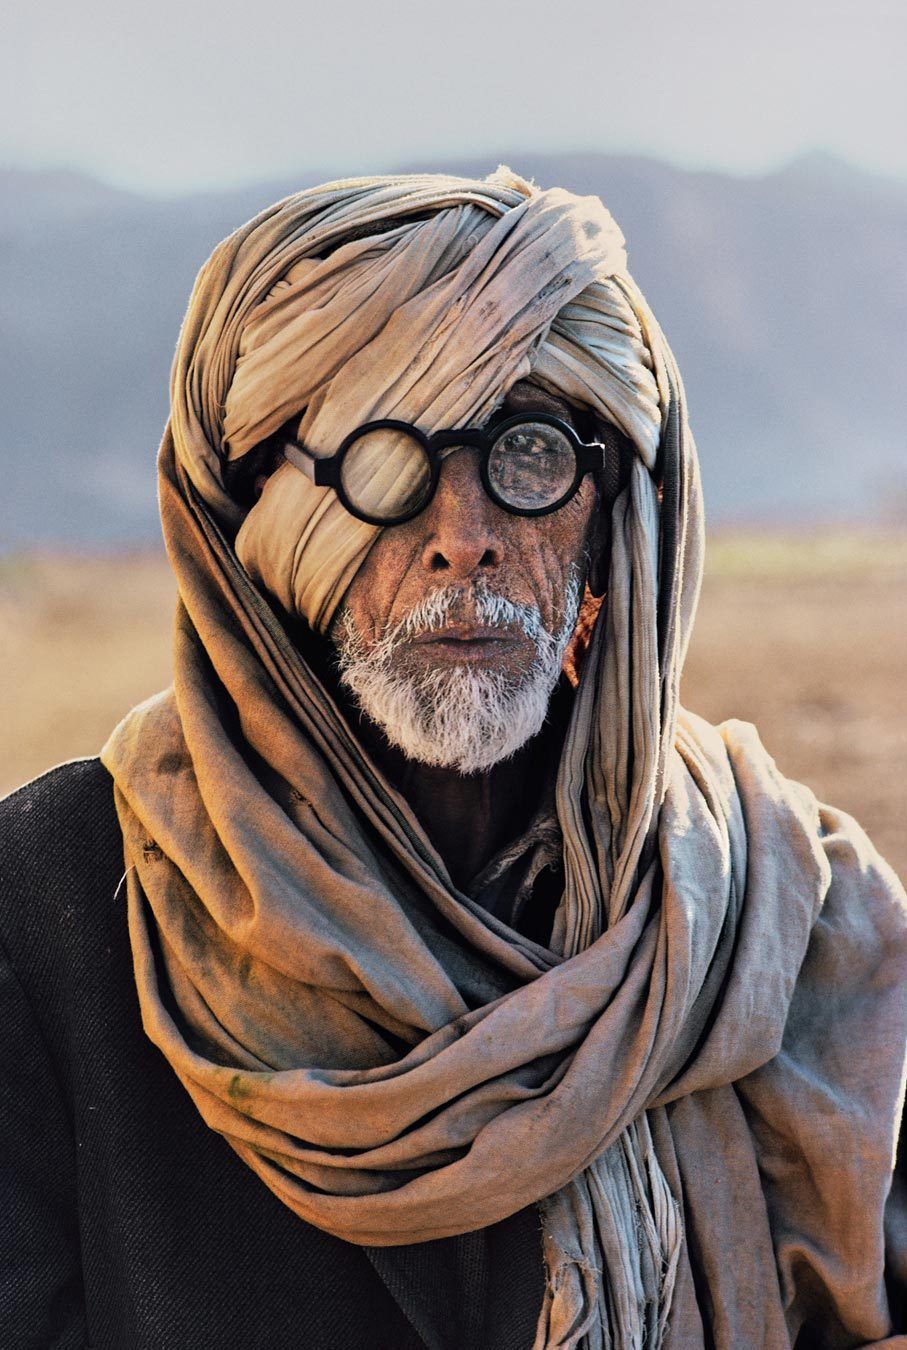 politics-war:  Afghan Refugee, Pakistan.  Photo: Steve McCurry   Gone the miles.